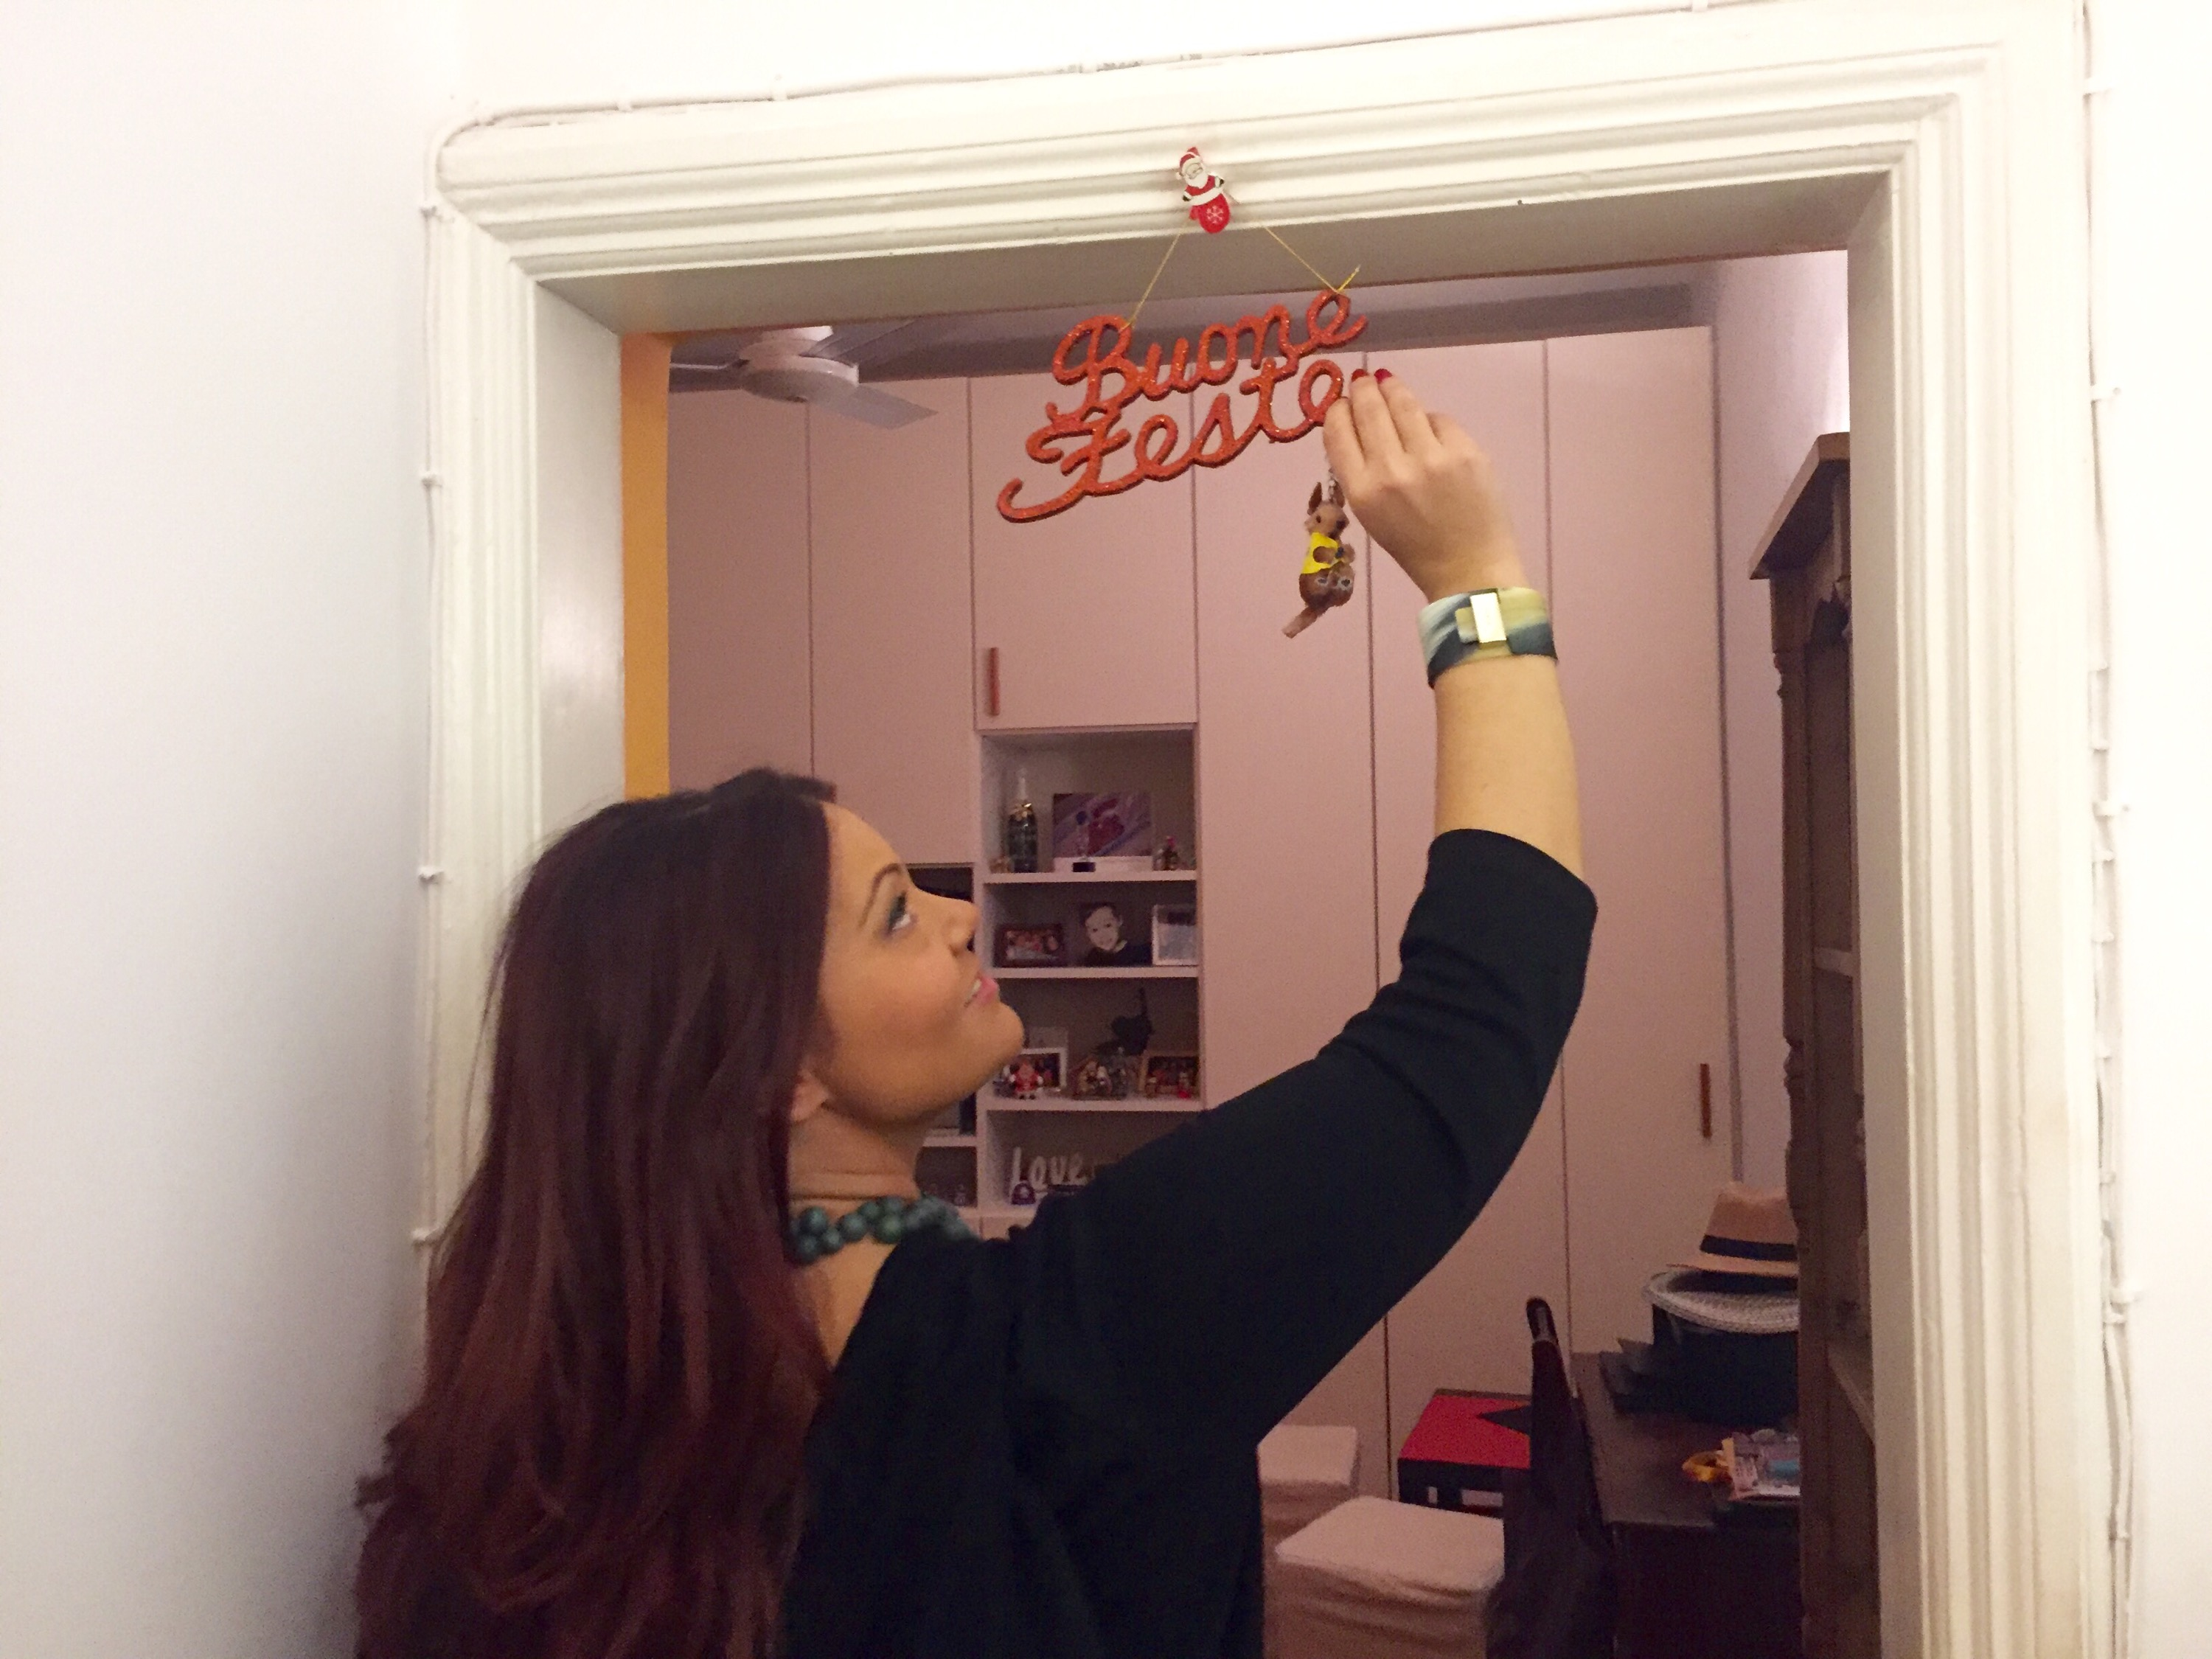 Putting up my annual Christmas decorations and saying Arrivederci Roma for 2015